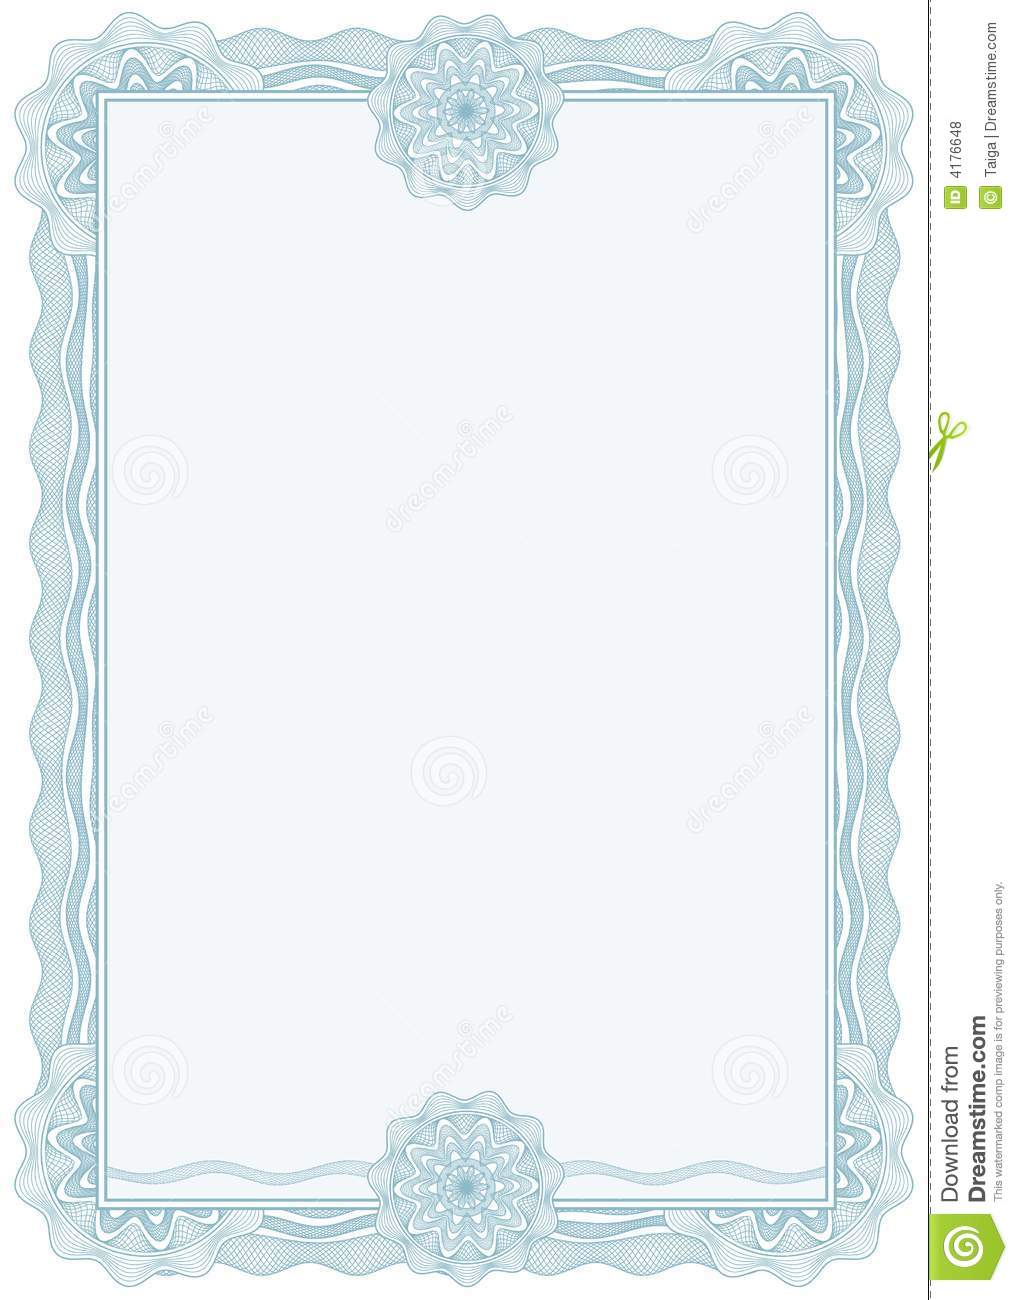 Diploma or certificate border a4 vector royalty free stock